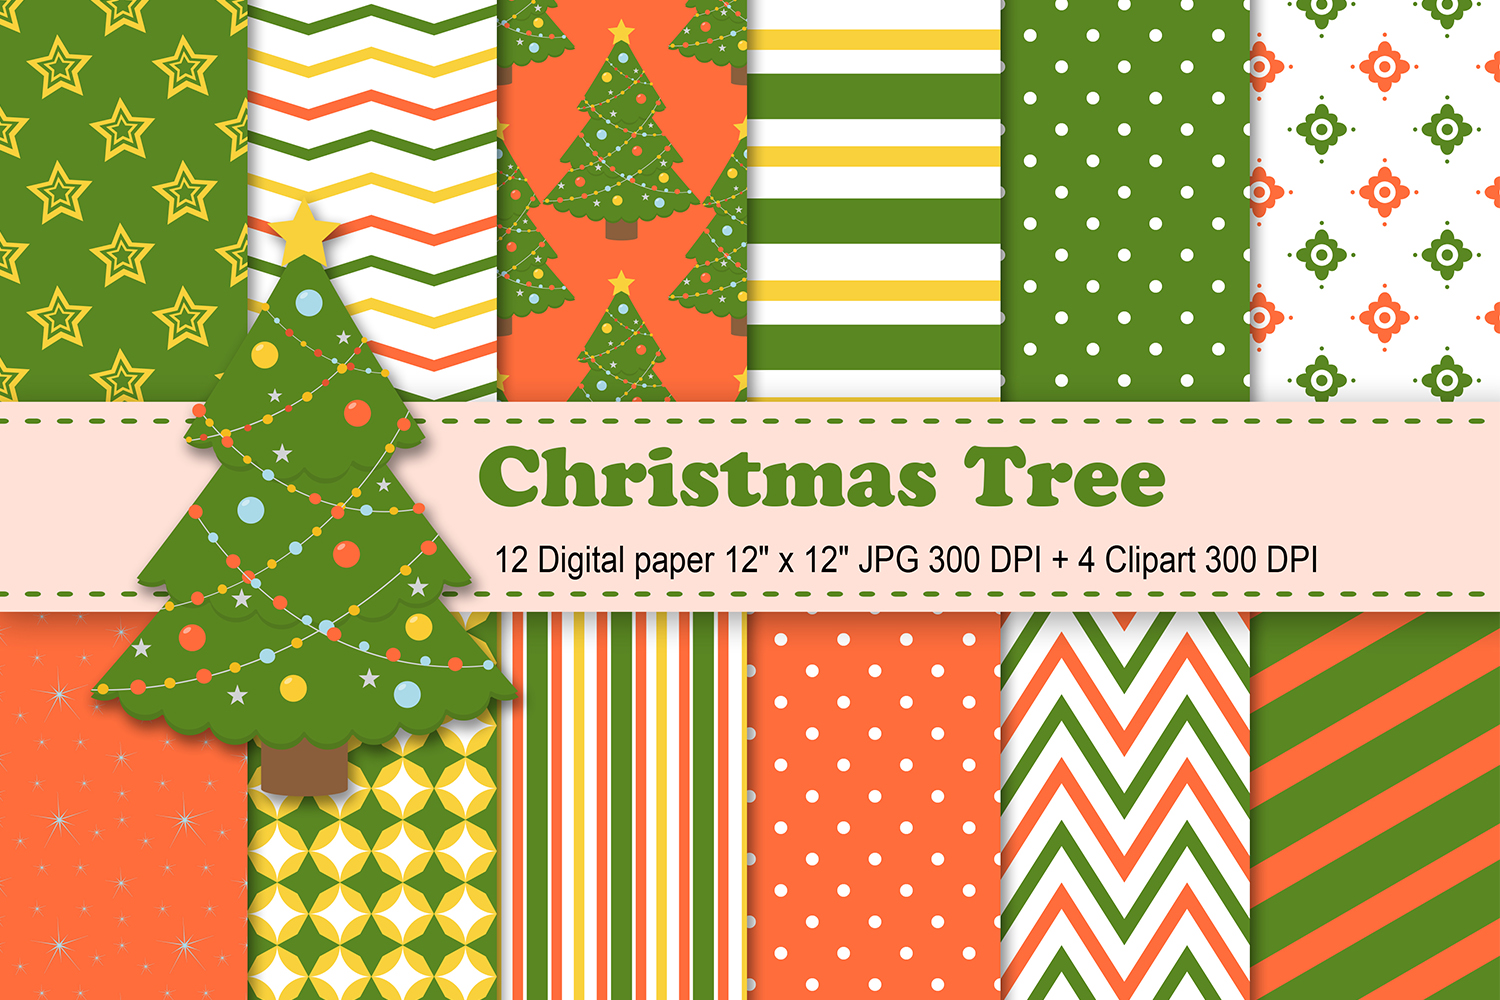 Download Free Christmas Tree Digital Paper Graphic By Cosmosfineart Creative for Cricut Explore, Silhouette and other cutting machines.